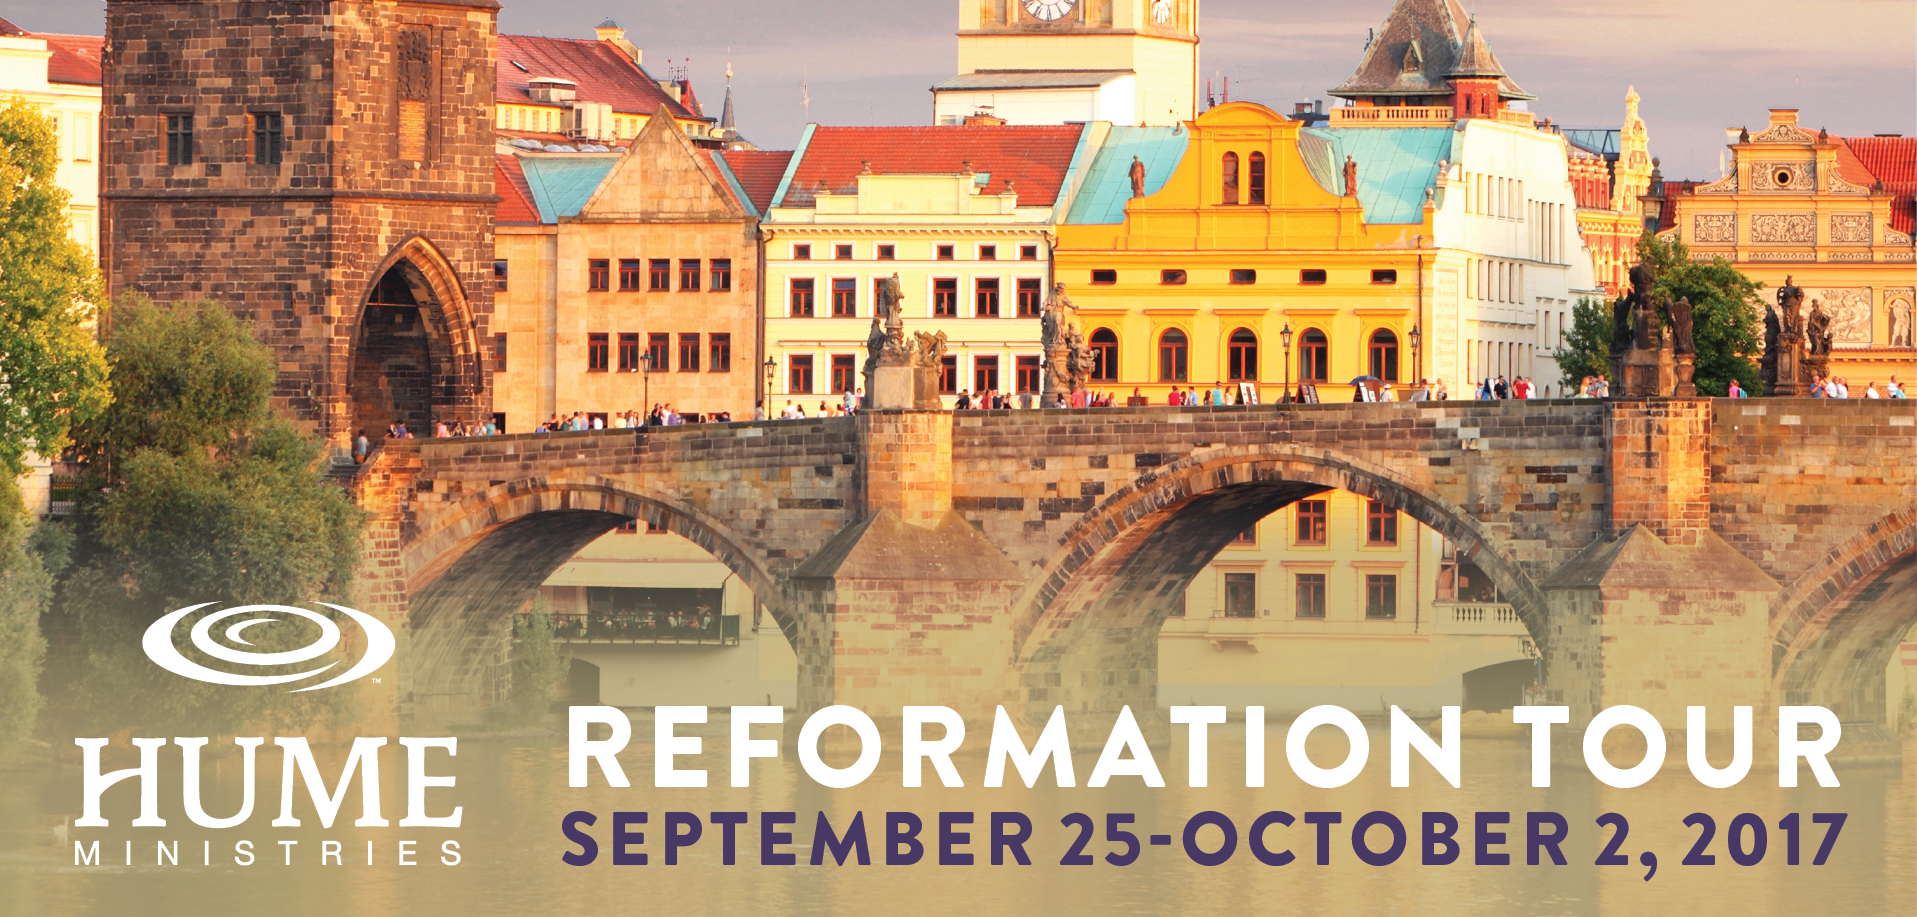 Take a Christian TourWX with Hume Ministries - European Reformation Tour - September 25 - October 2, 2017